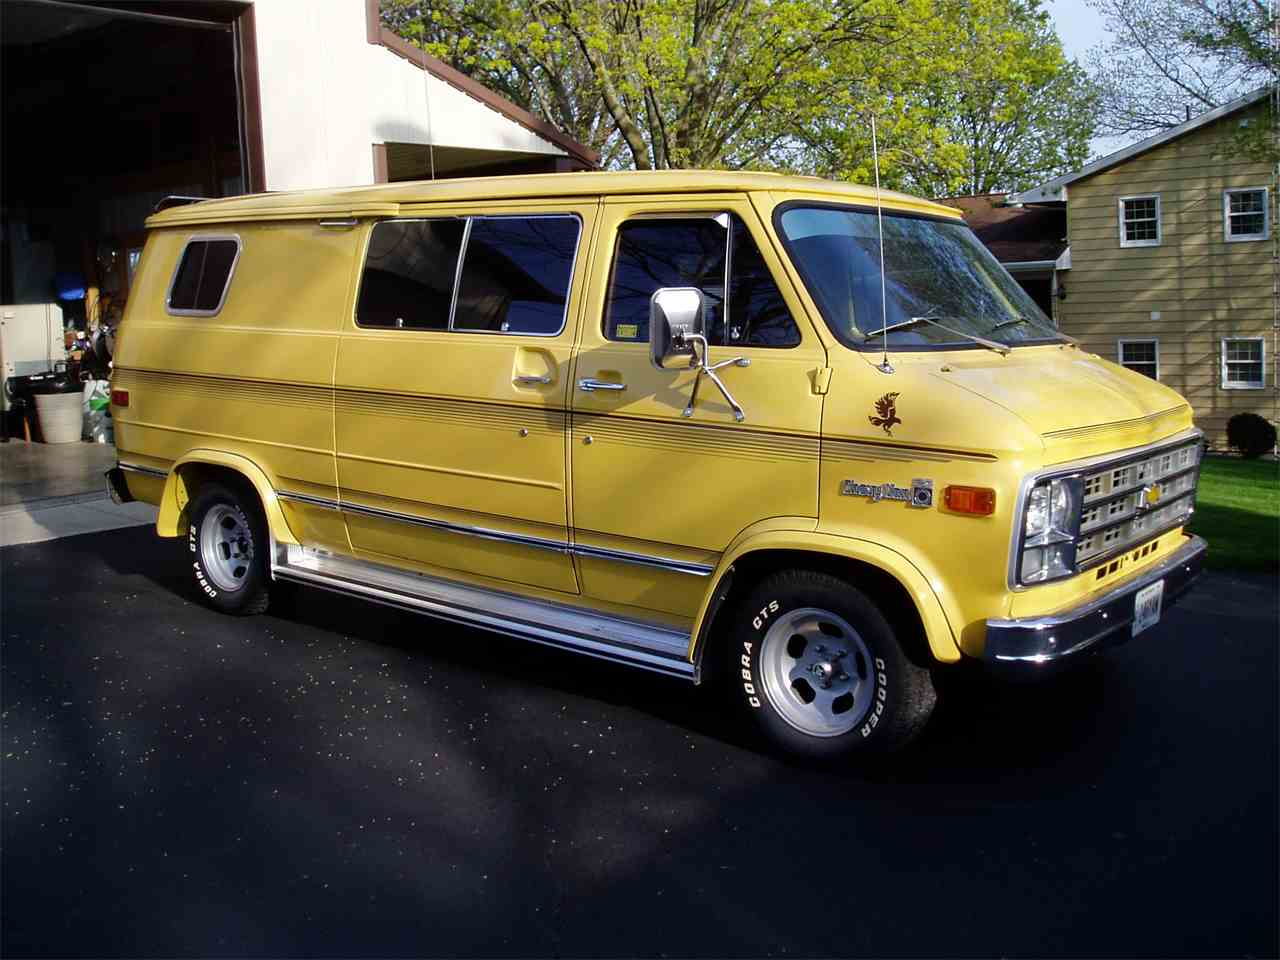 All Chevy 1978 chevy van for sale : 1978 Chevrolet G20 for Sale | ClassicCars.com | CC-882497